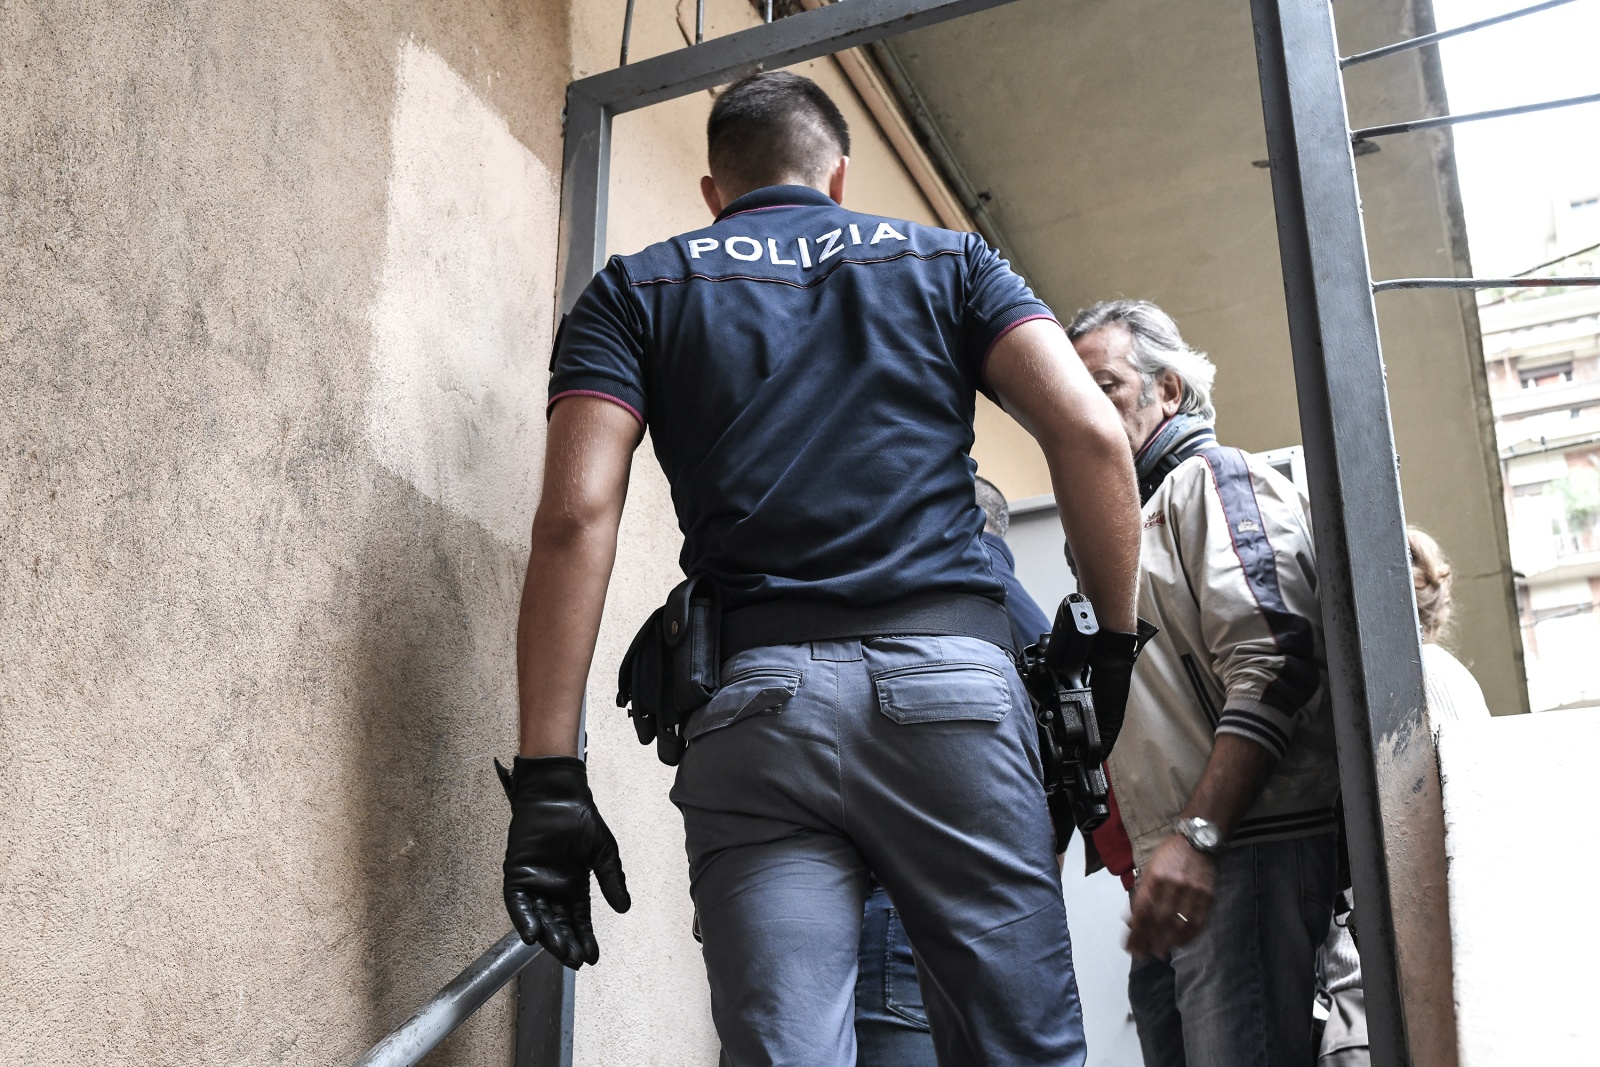 Turin, Italy (2018). The police clear the pusher from the cellars of via Aosta